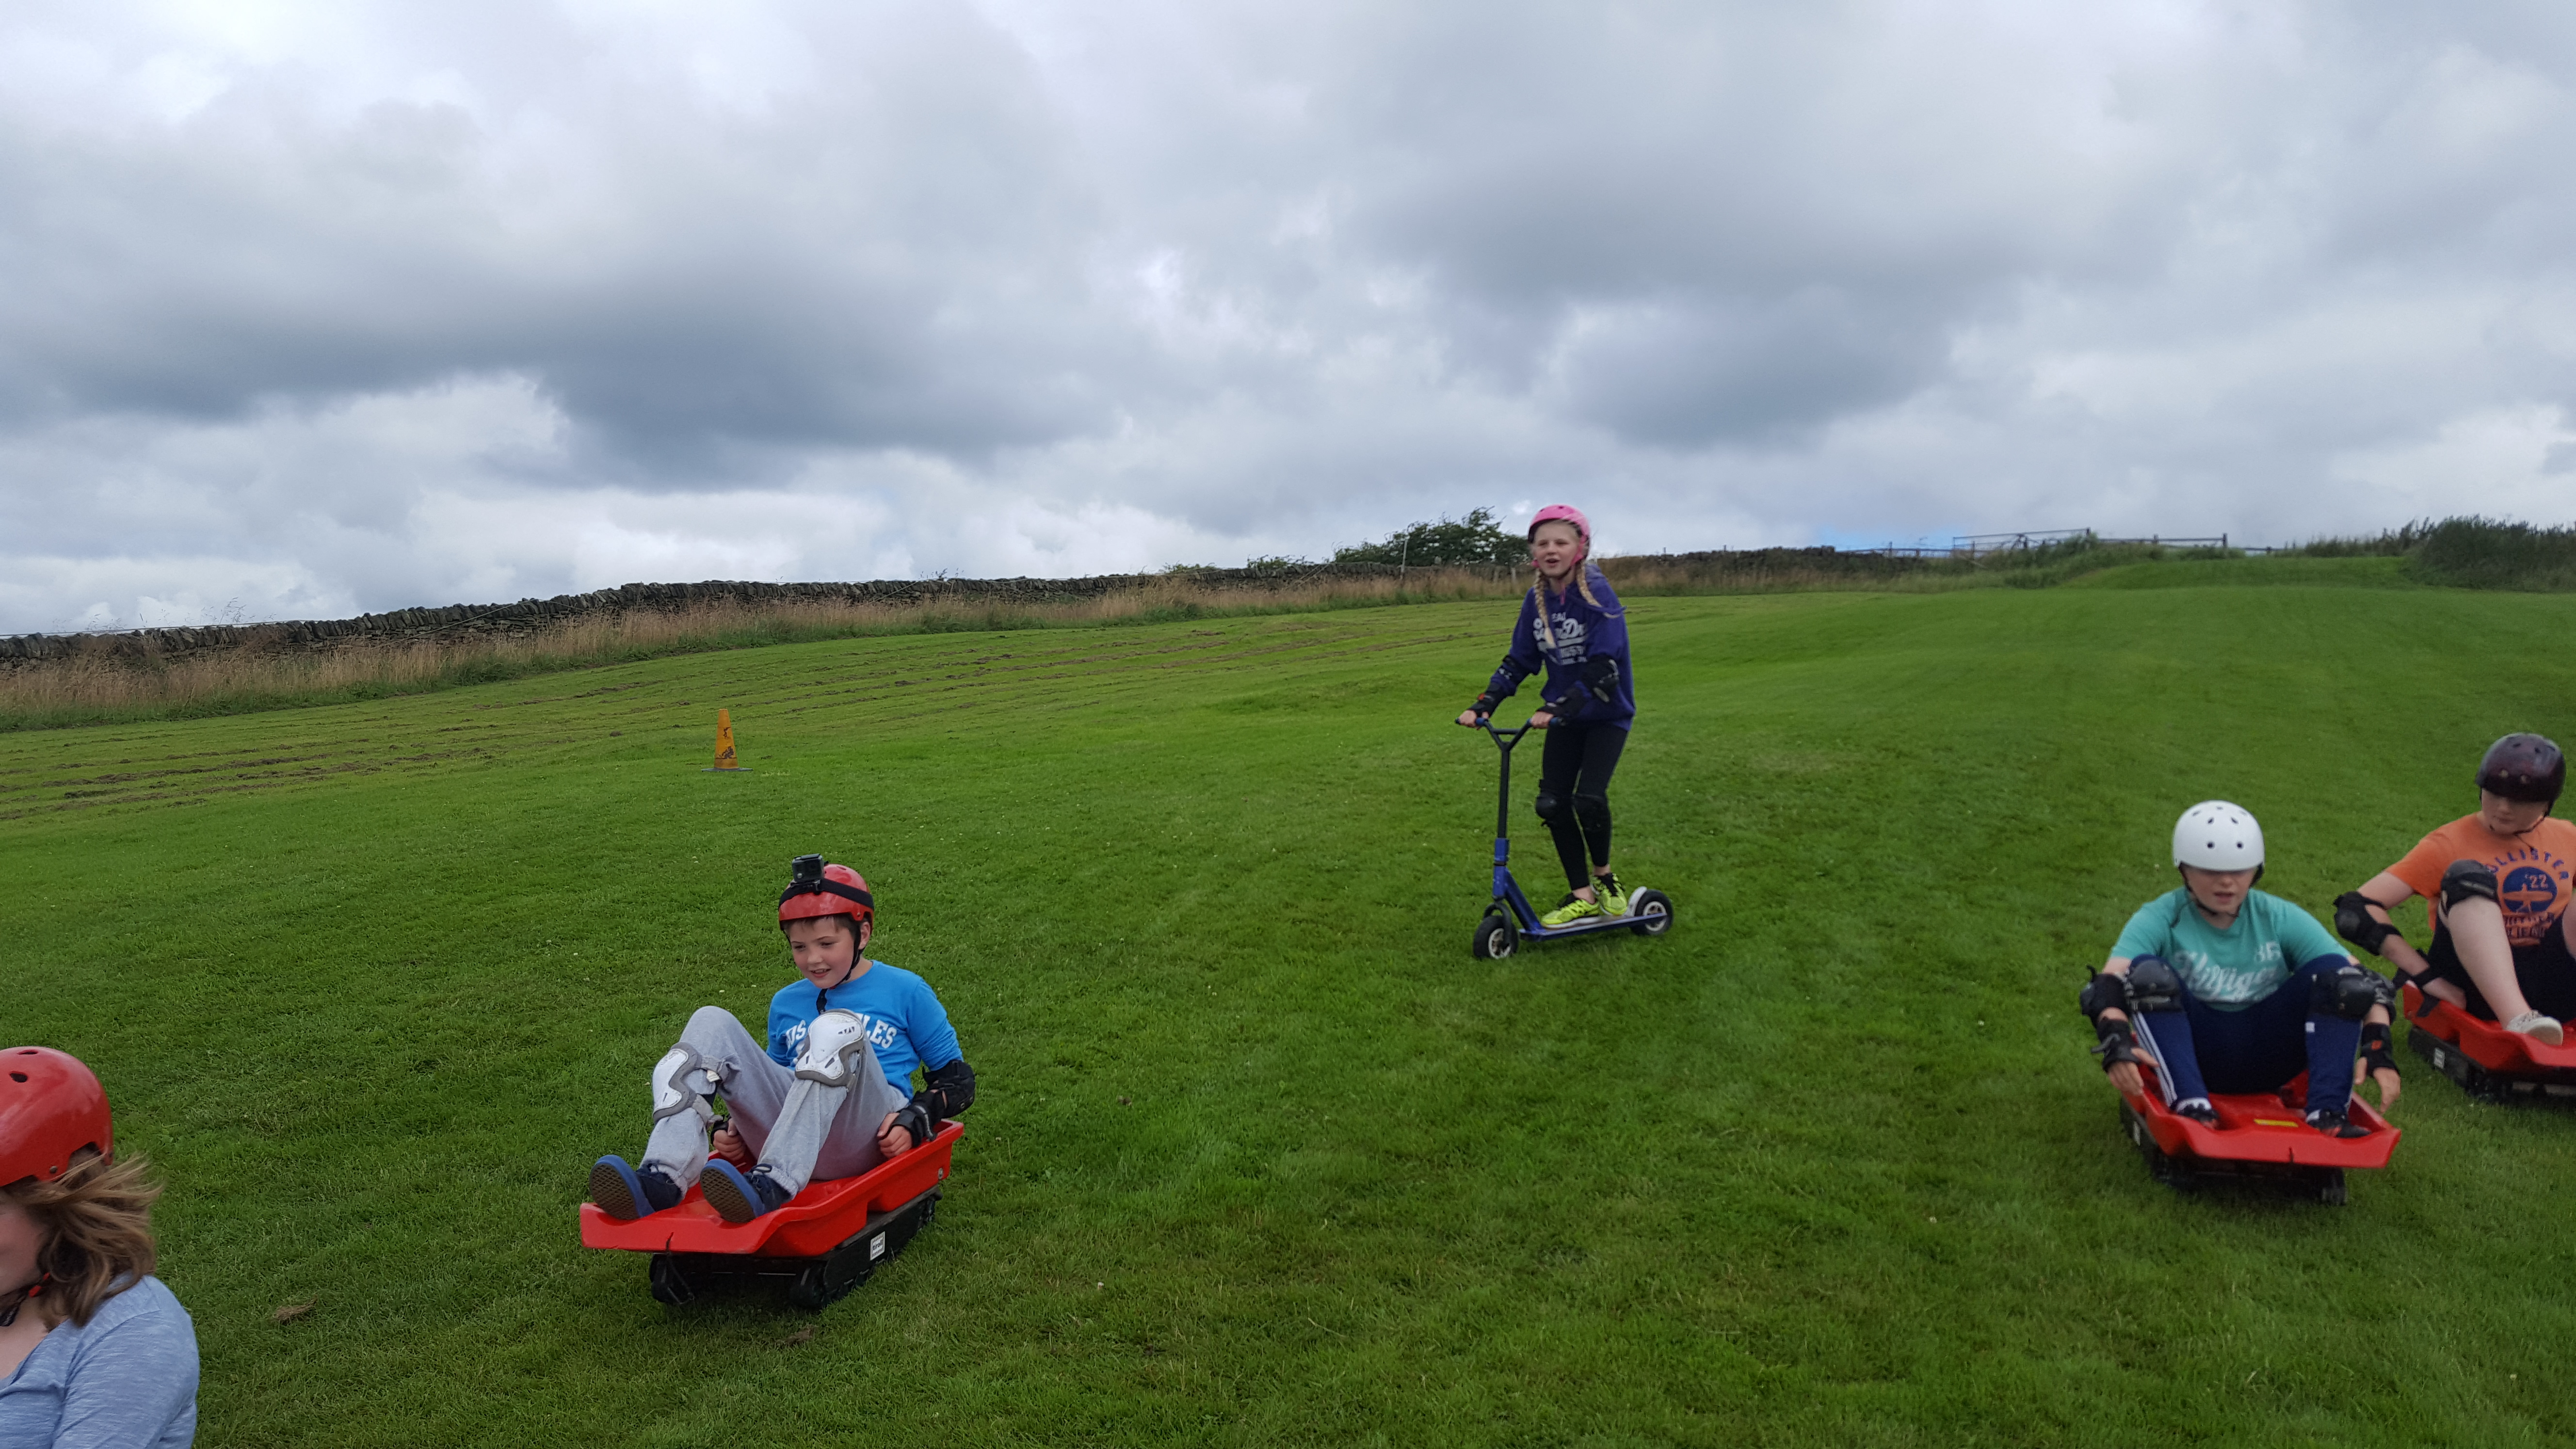 Grass sledging and dirt scooters